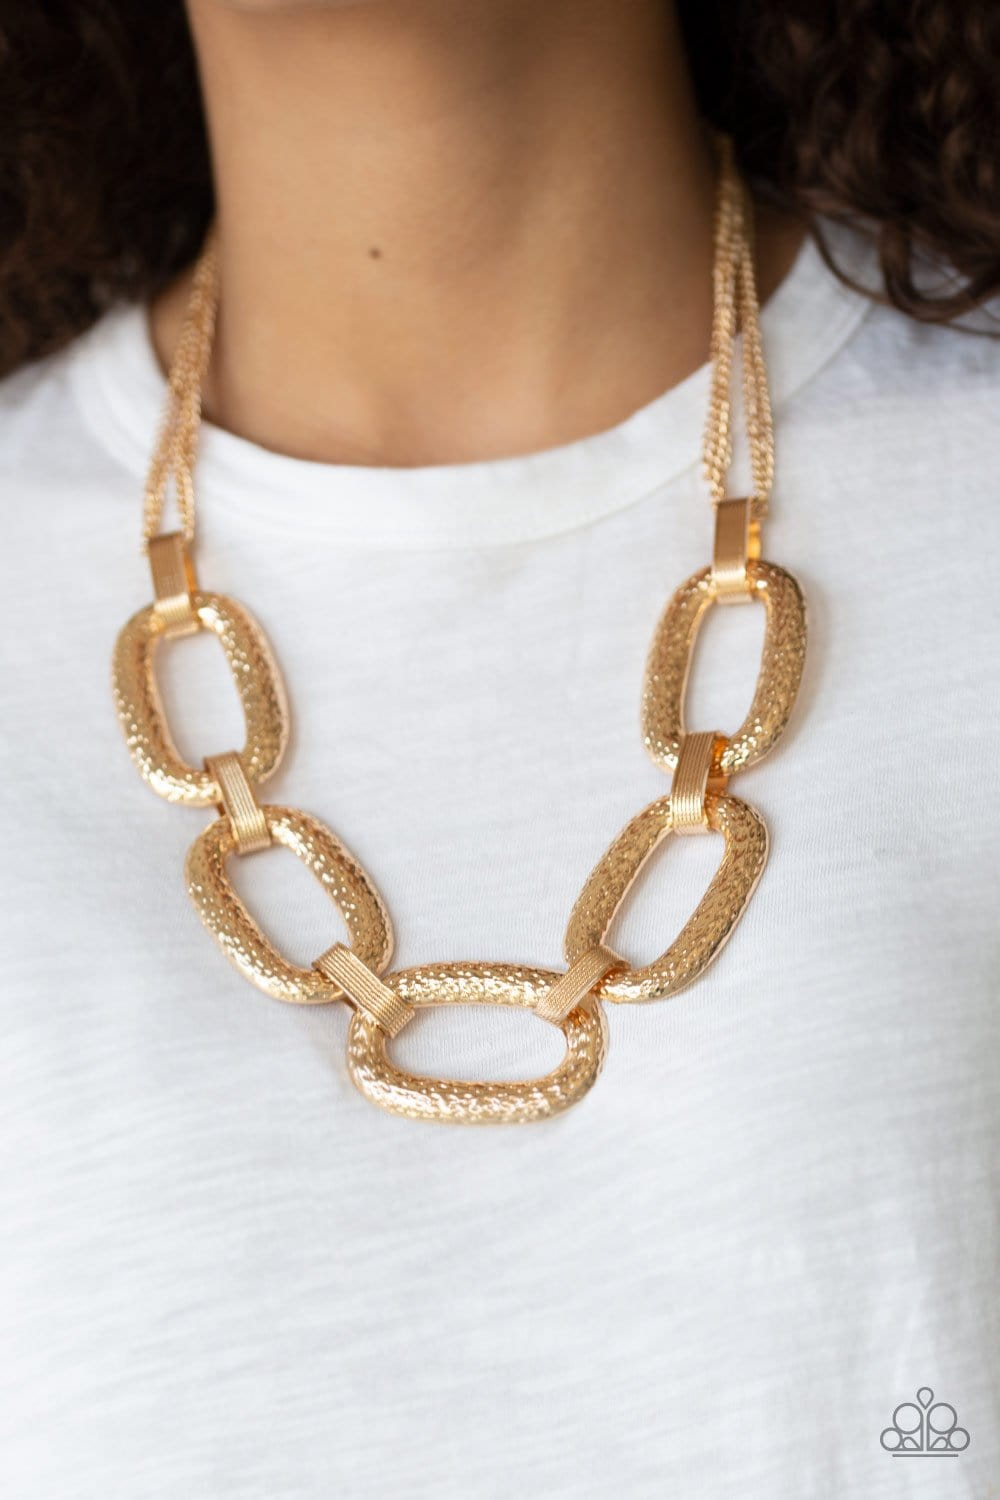 Take Charge - Gold: Paparazzi Accessories - Jewels N' Thingz Boutique